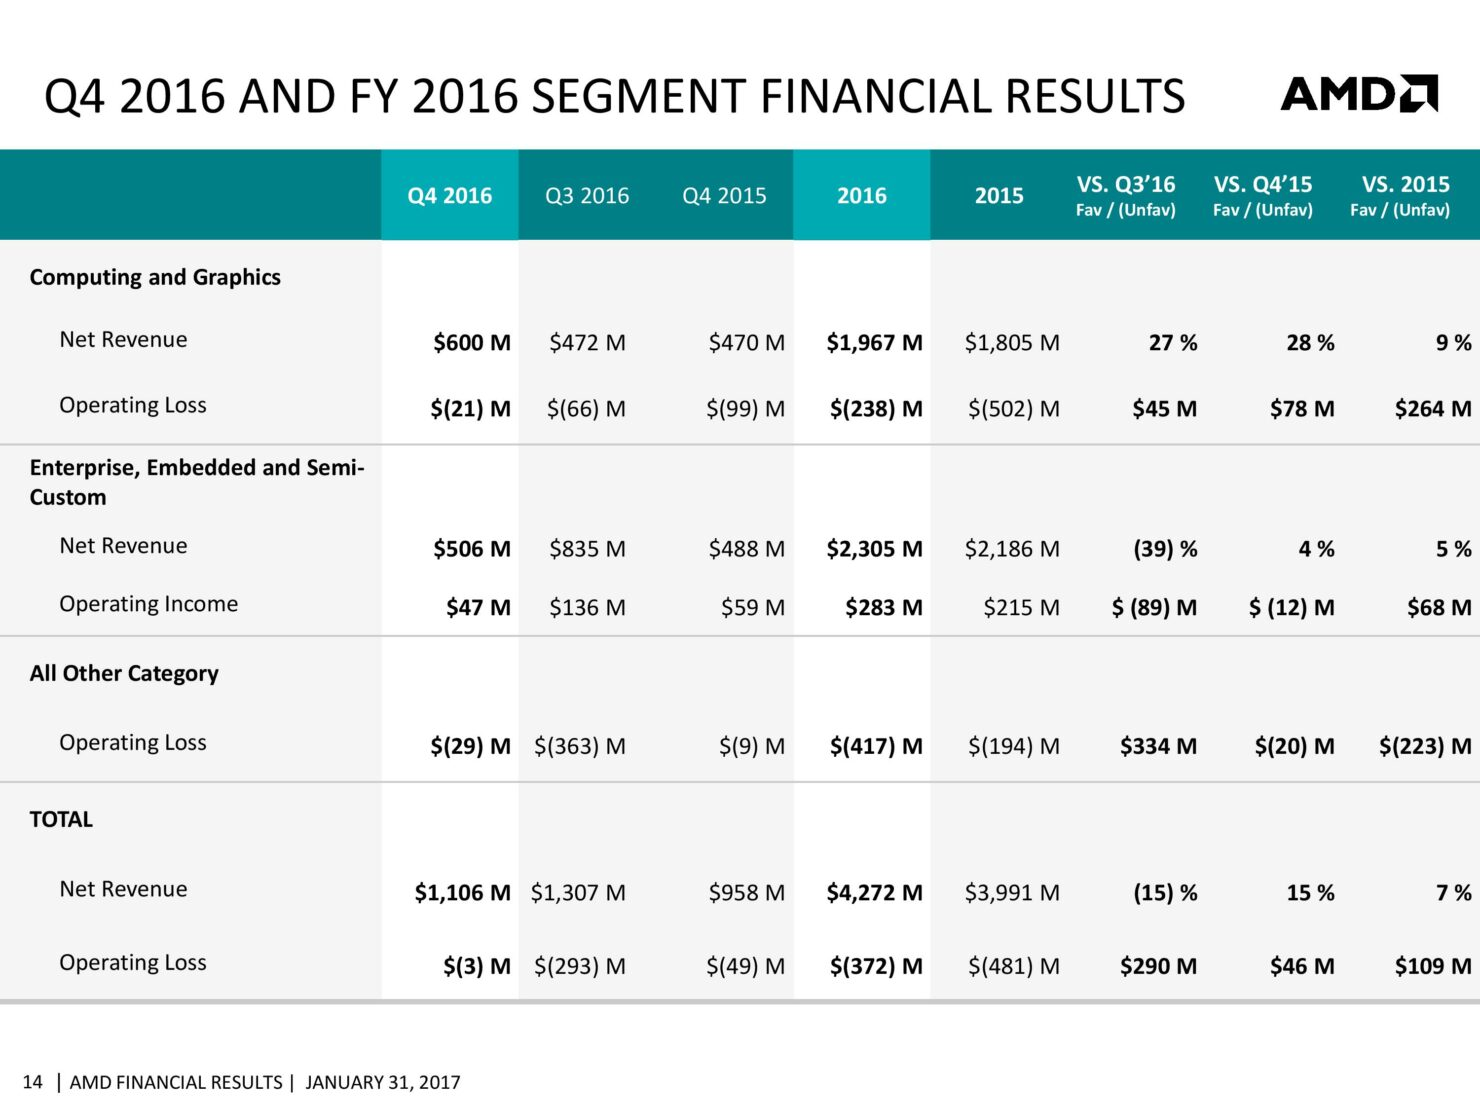 amd-cfo-commentary-slides-q4-16-page-014